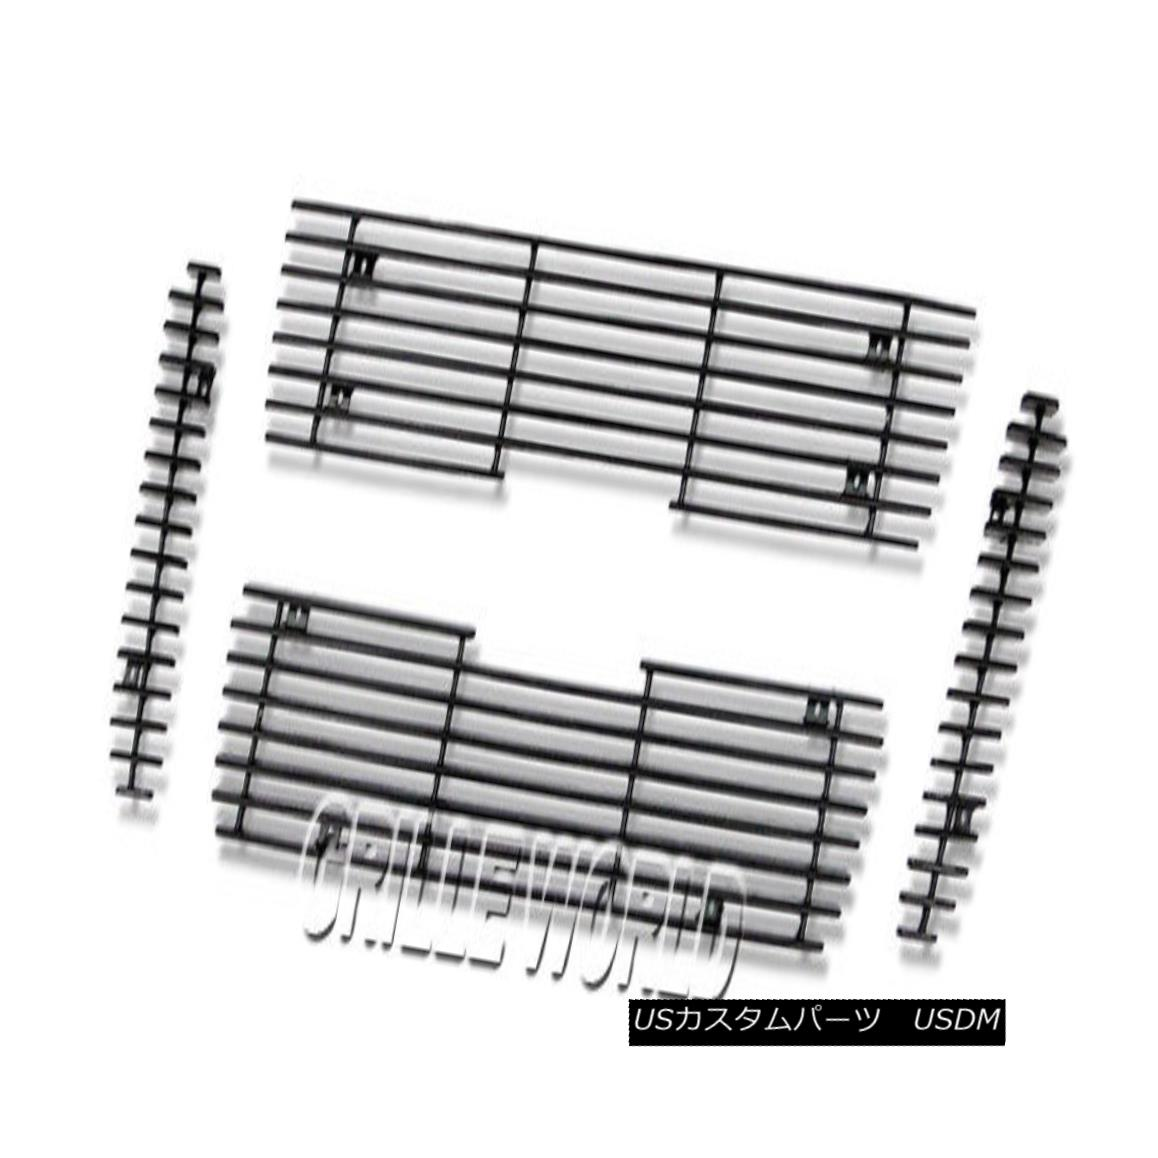 グリル For 01-03 Ford Explorer Sport/01-05 Sport Trac Billet Grill 01-03 Ford Explorer Sport / 01-05スポーツTrac Billet Grill